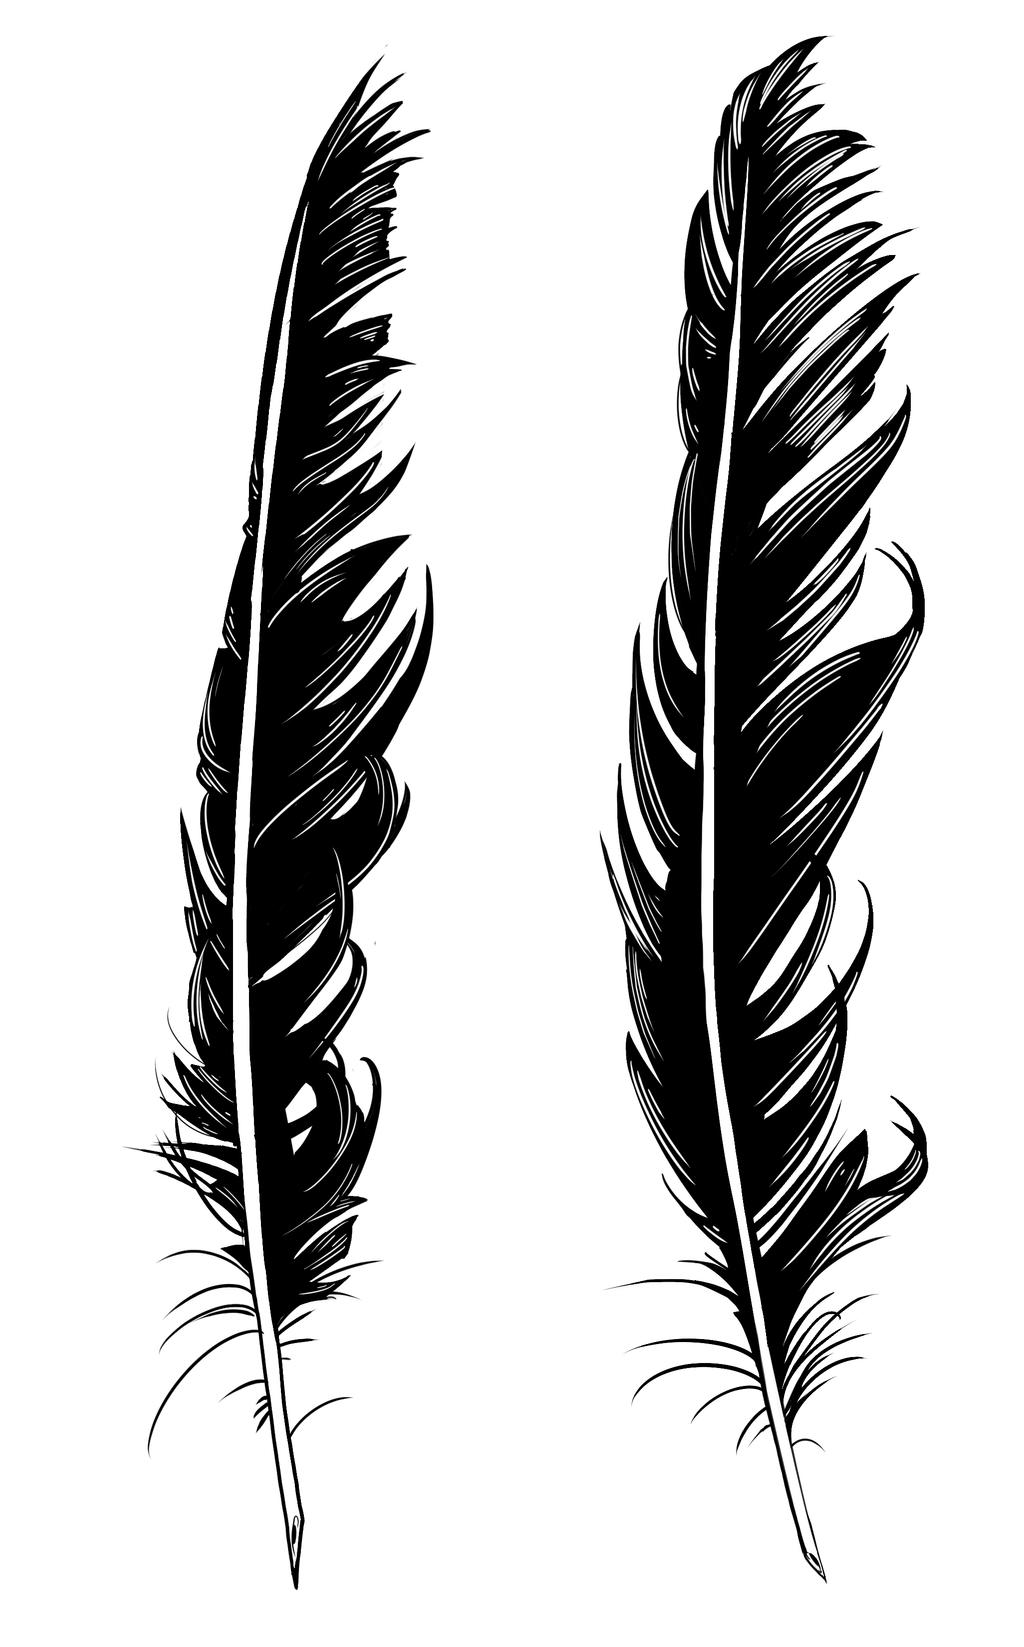 Crow Feather Tattoo Designs by dirtyinks on DeviantArt